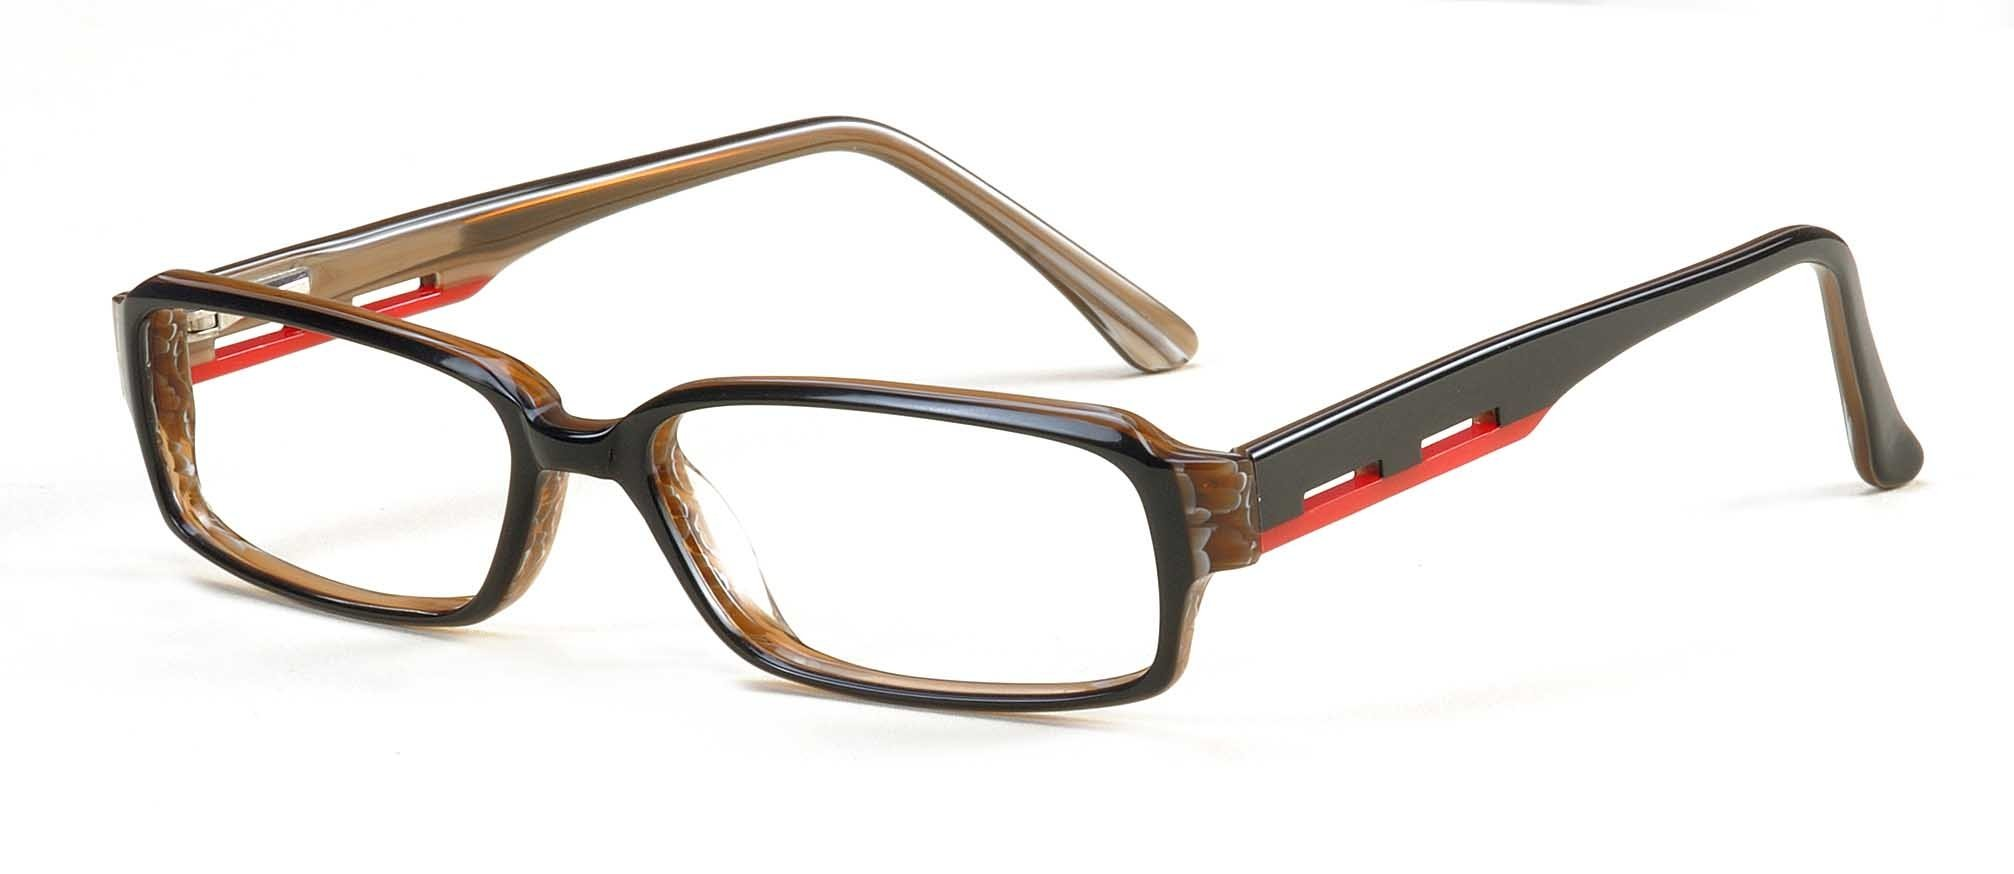 eyeglass frames buy spectacle frames product on alibabacom